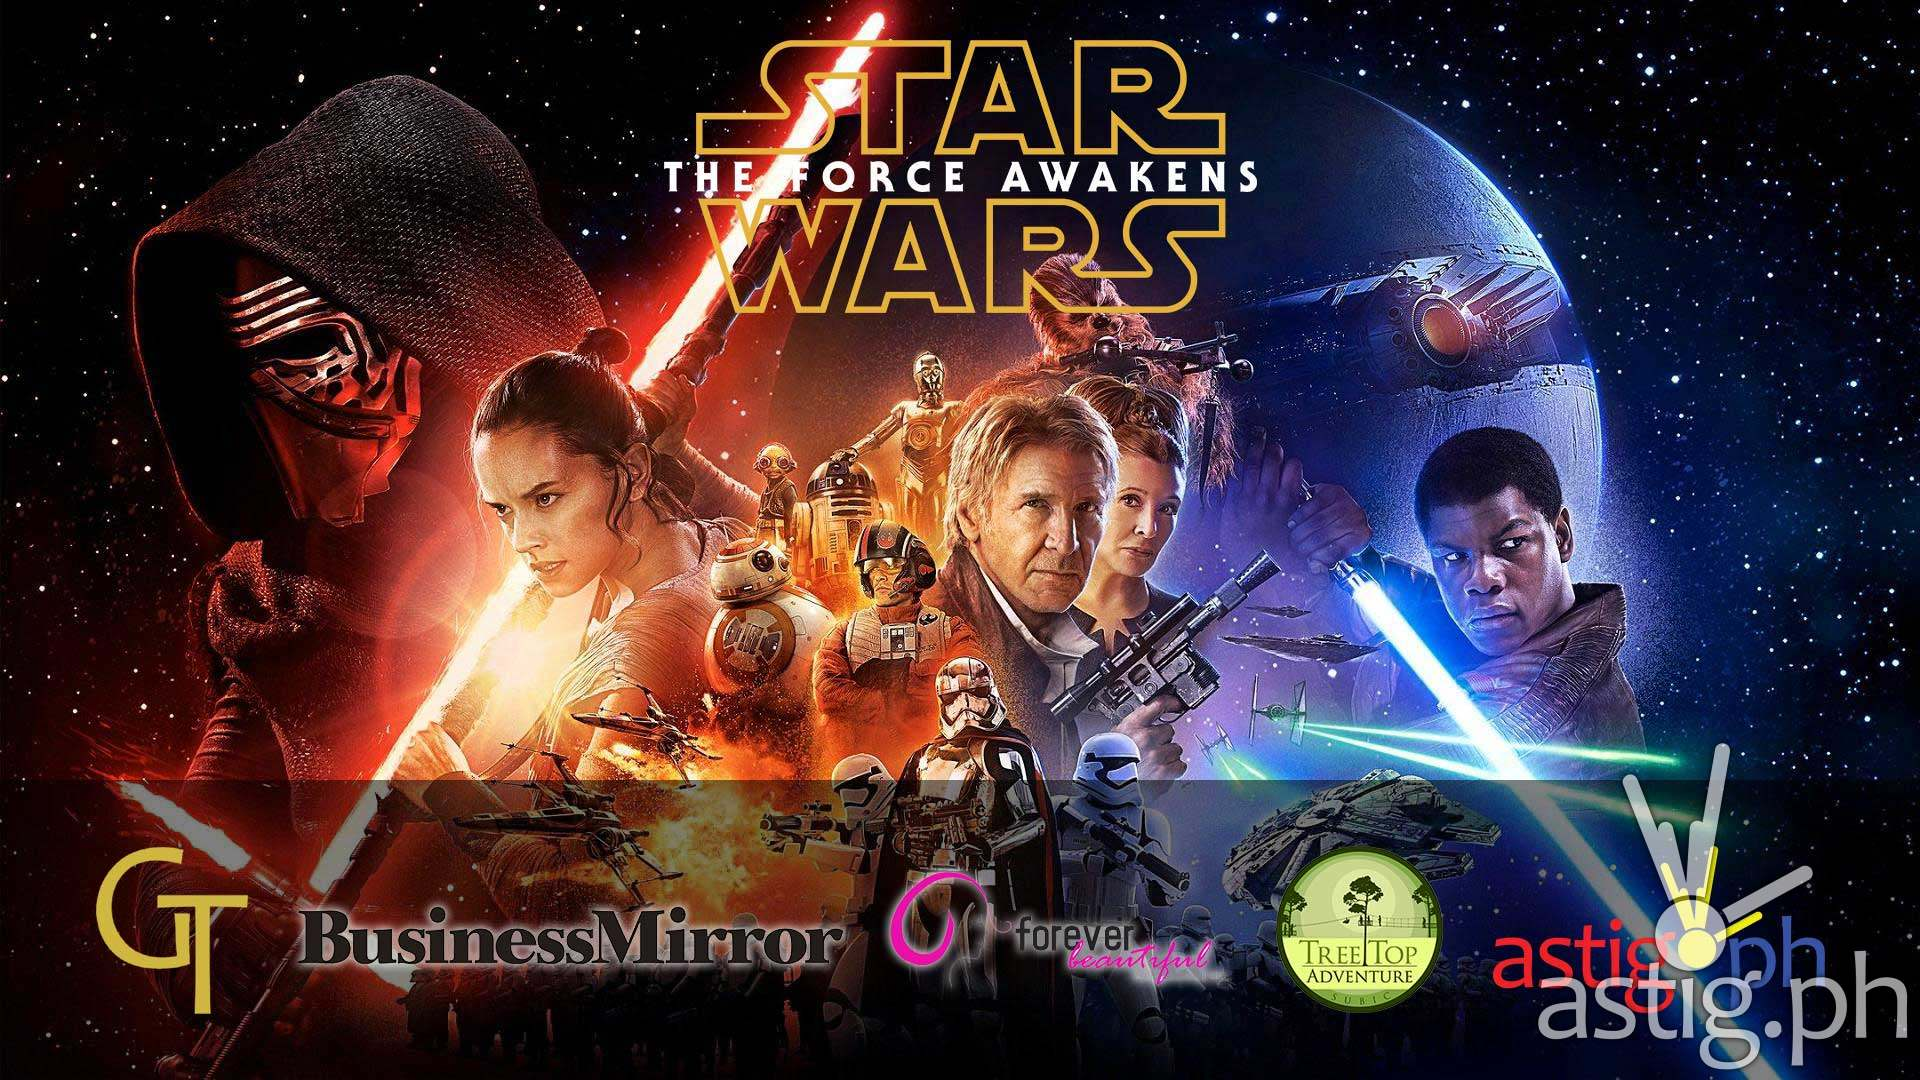 Star Wars The Force Awakens by Golden Ticket Events